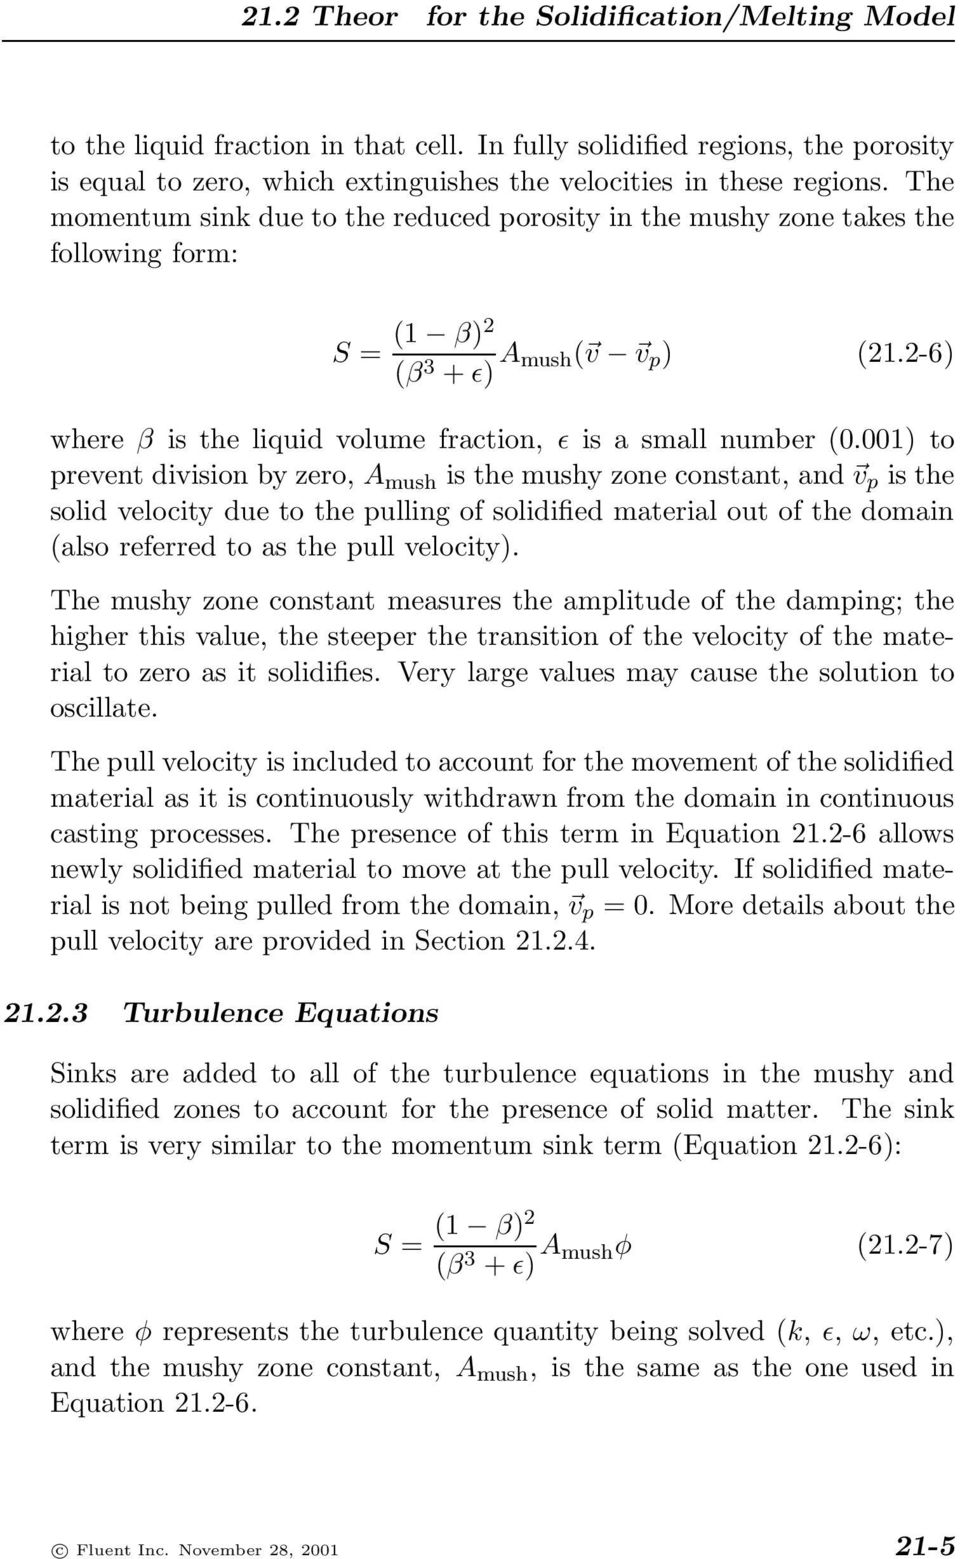 001) to prevent division by zero, A mush is the mushy zone constant, and v p is the solid velocity due to the pulling of solidified material out of the domain (also referred to as the pull velocity).